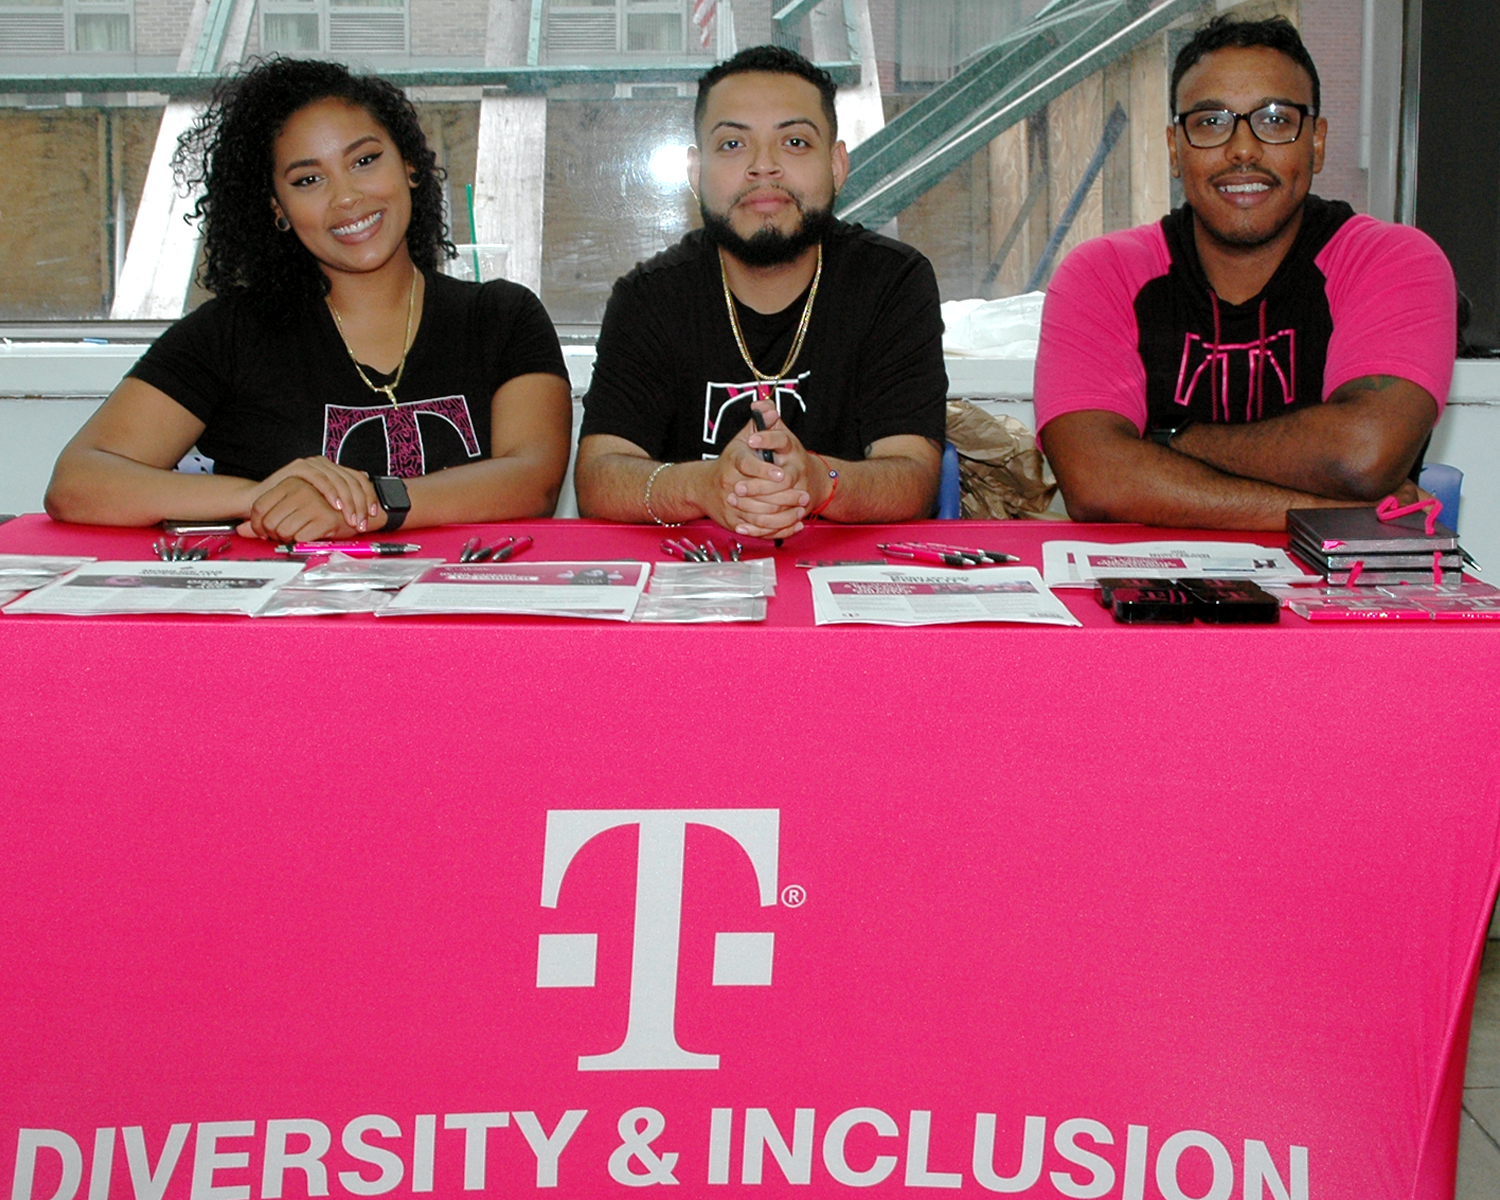 Three interviewers from T-Mobile